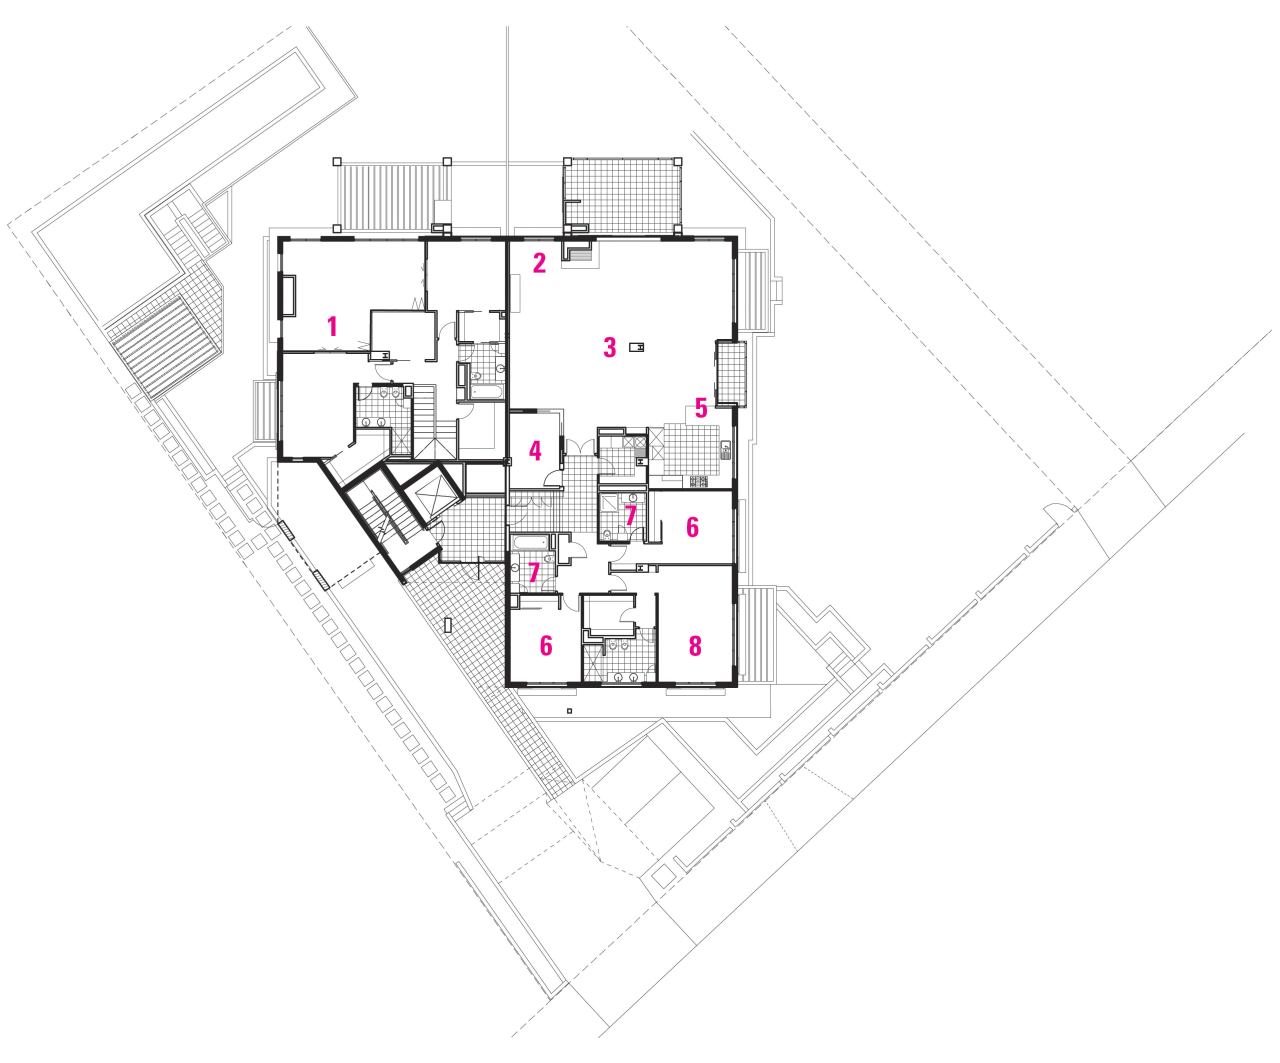 Plan of apartment layout. angle, architecture, area, design, diagram, drawing, floor plan, line, plan, product design, schematic, structure, white